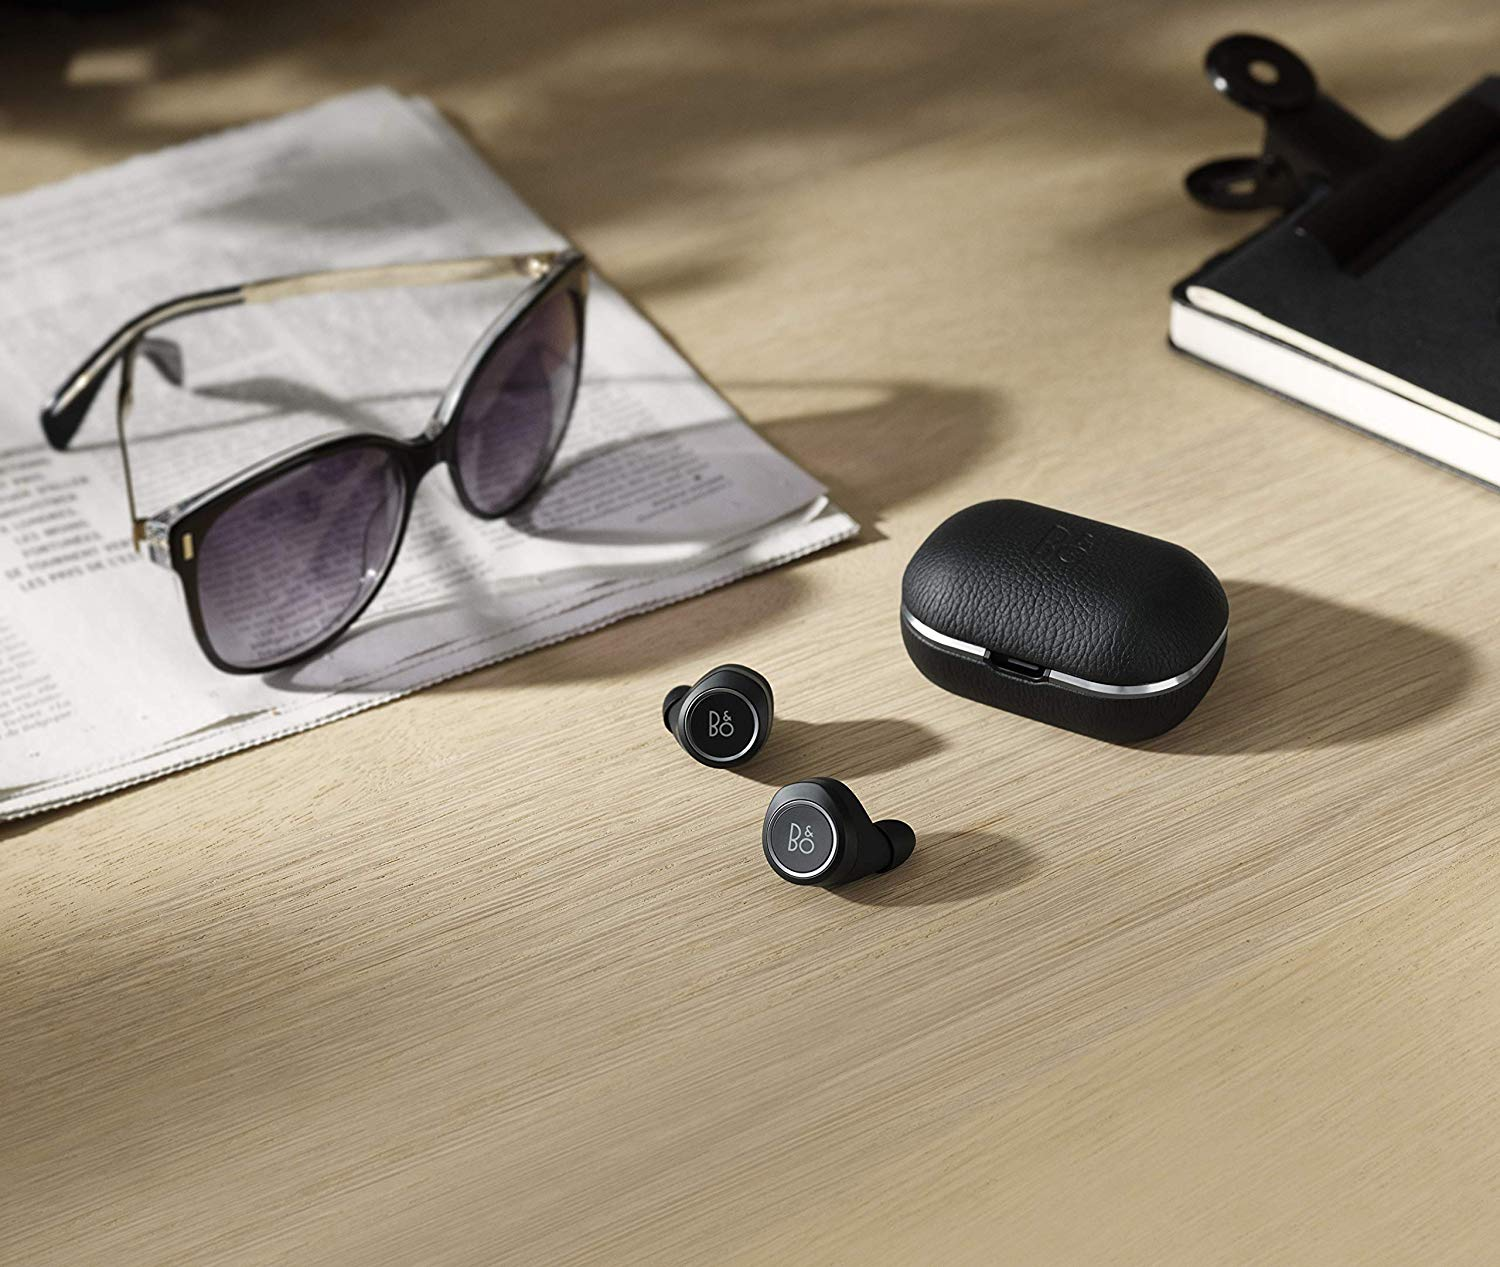 aa35fcf7c37 Truly wireless earphones are slowly starting to get more and more popular  and with the headphone jack becoming obsolete on the most smartphones, ...